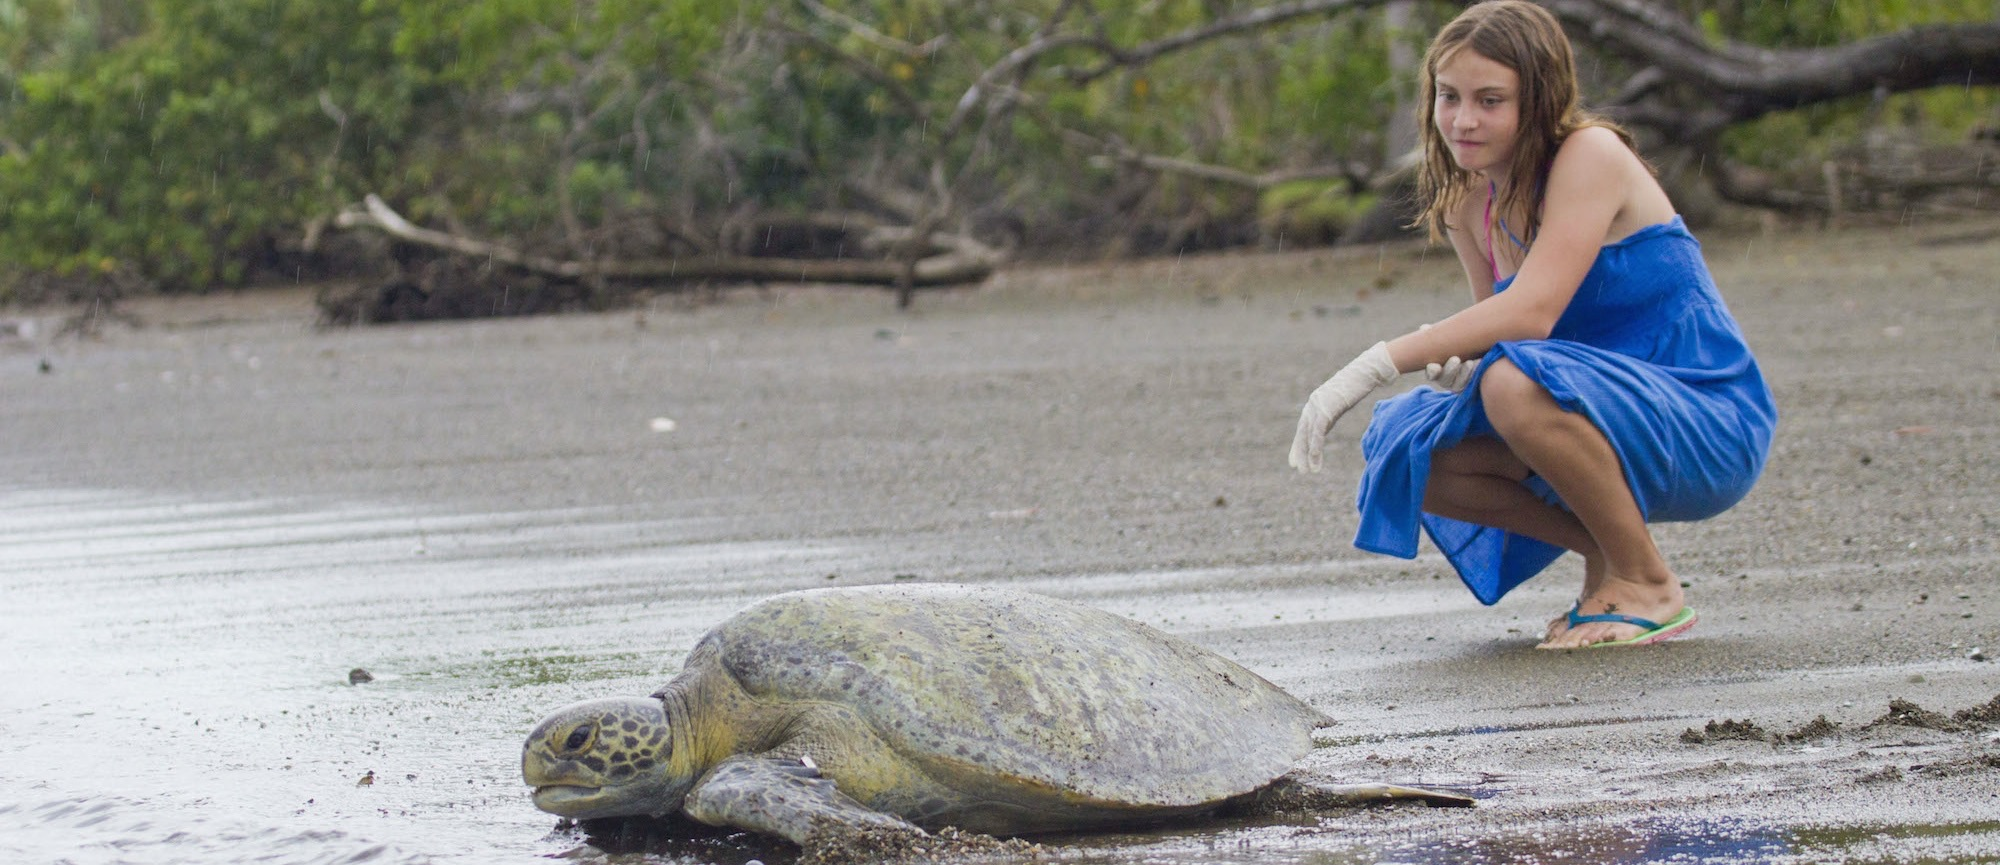 A young traveler watches a green turtle return to the water in Costa Rica (credit: Hal Brindley)